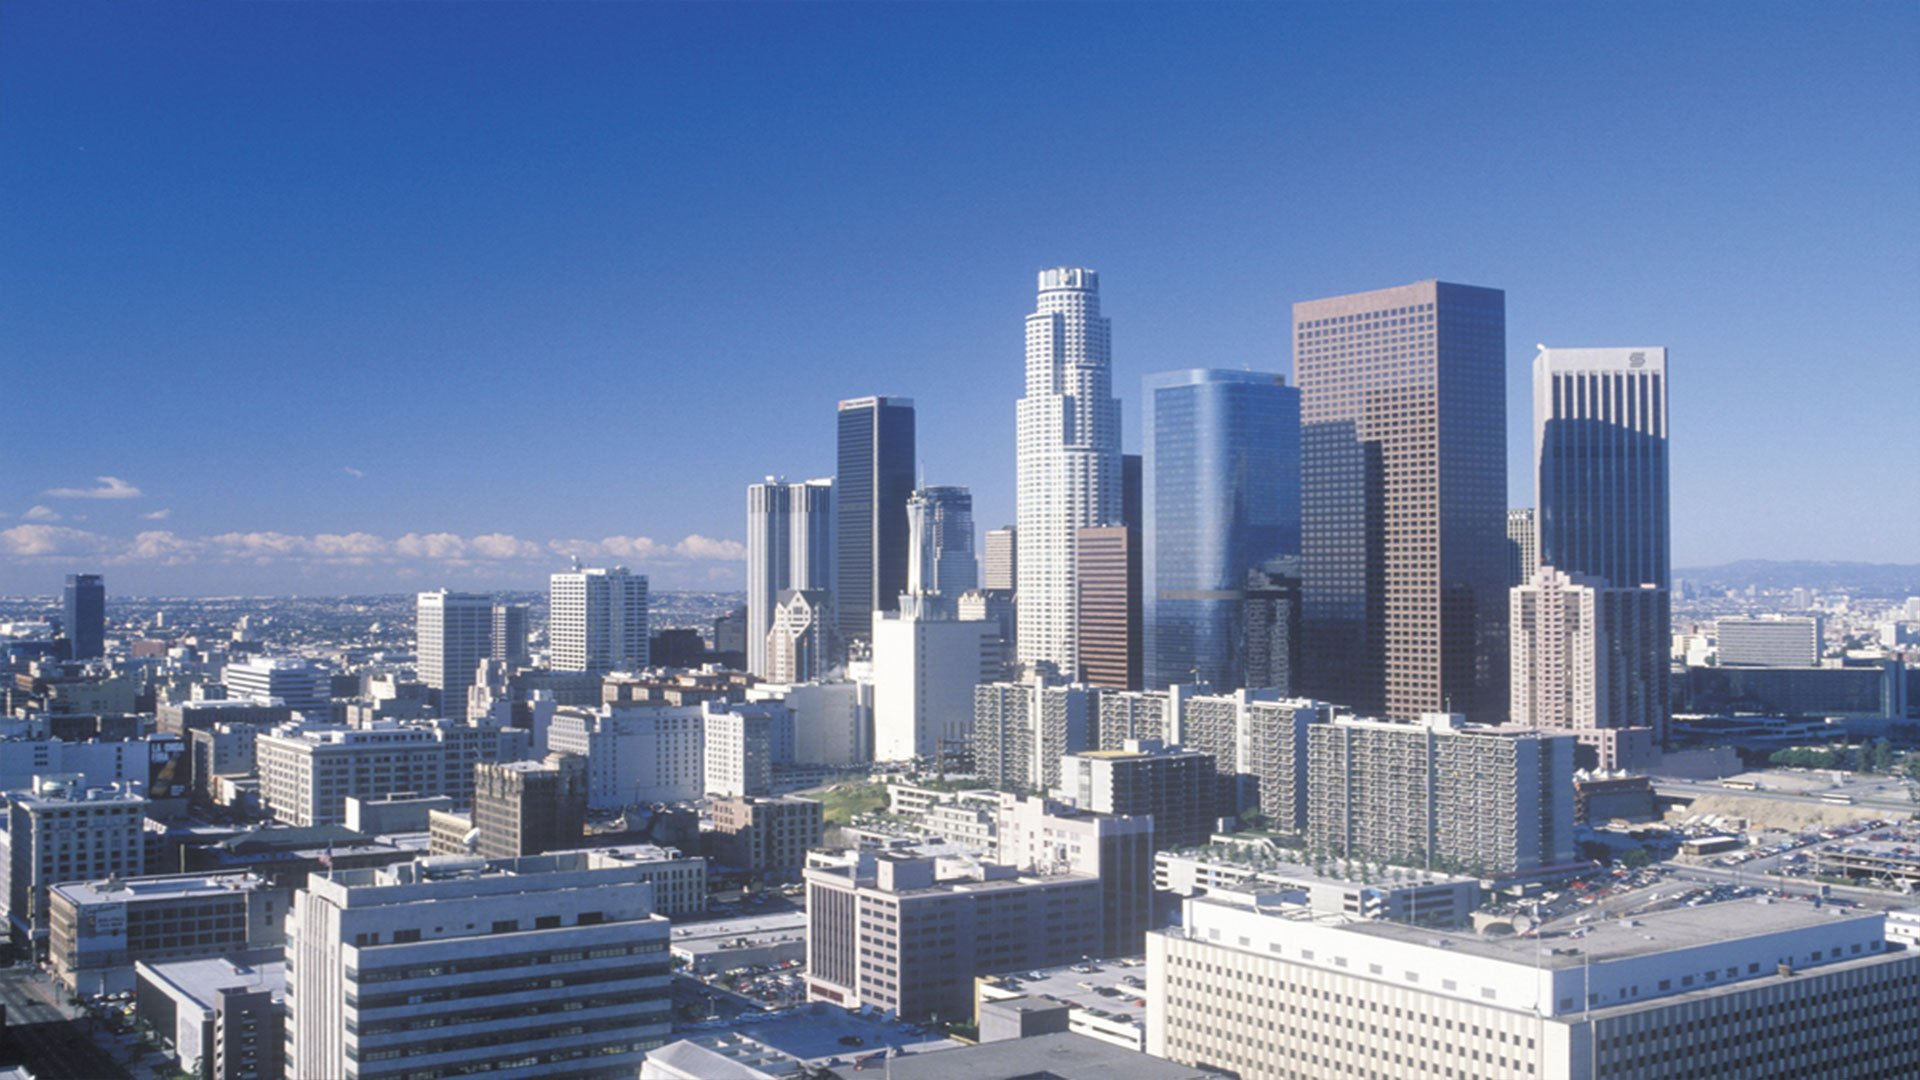 Vacation Travel Guide To Los Angeles Best Places Destinations To Visit In USA explore tourist attractions guide vacation tourism Zen Tripstar